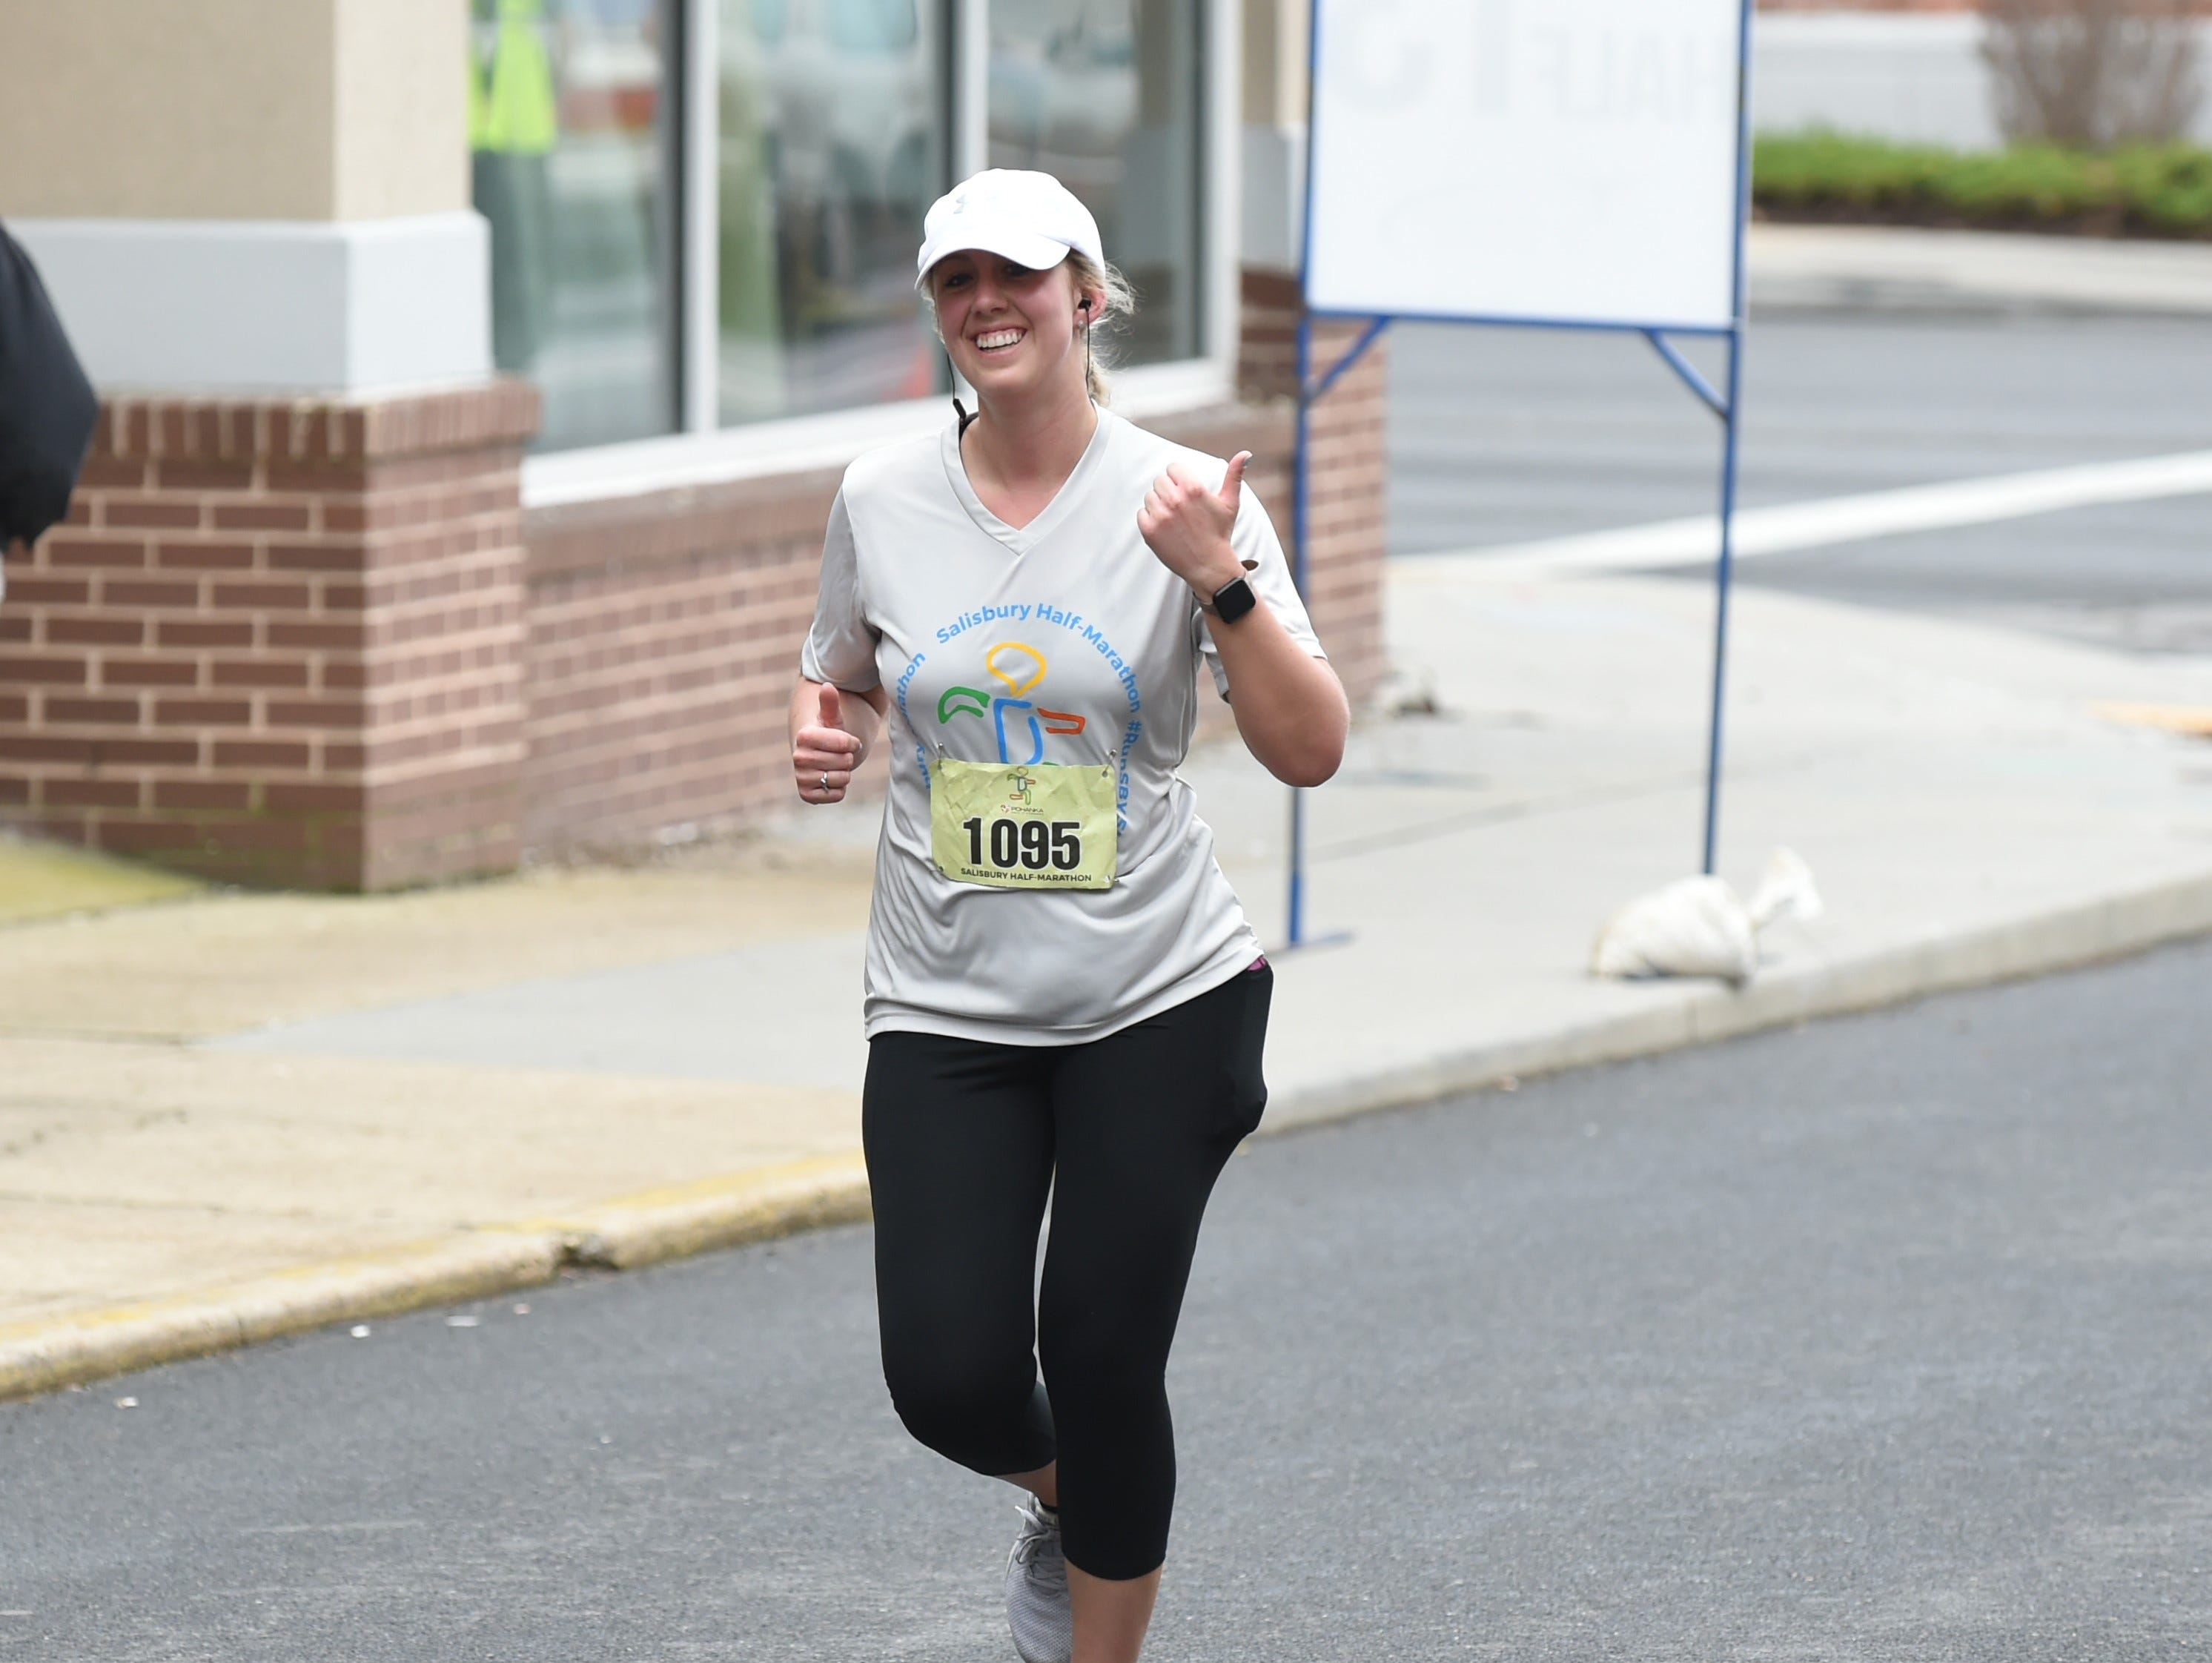 Laura Jackson gives a thumbs up as she finishes the half marathon at the 2nd Salisbury Marathon/ Half Marathon/ 5k on Saturday, April 6, 2019.